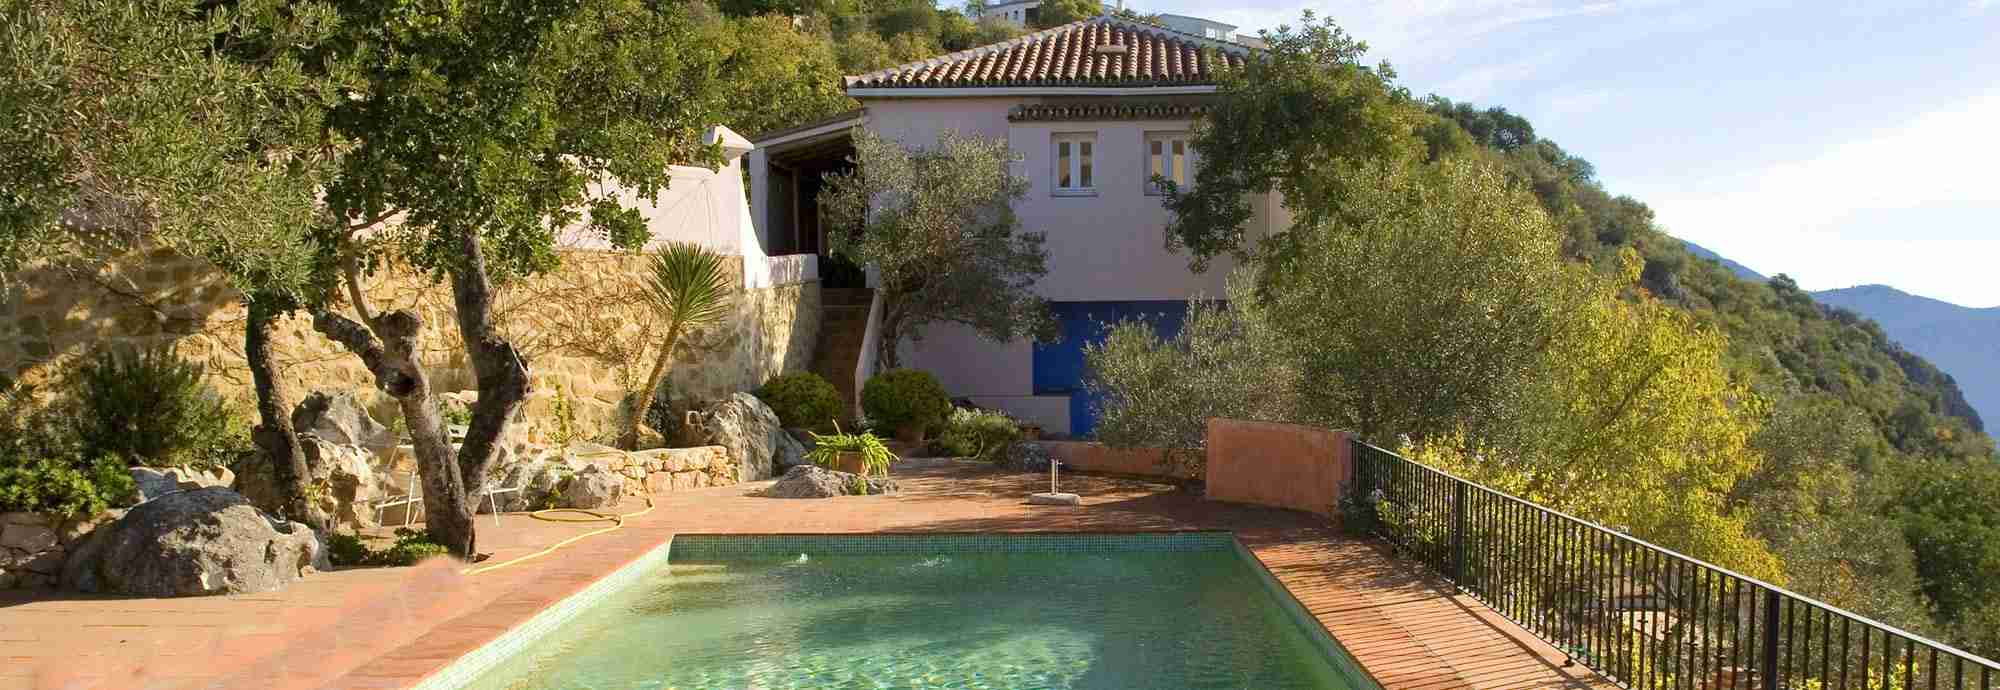 Gaucin holiday villa with private pool, Ronda mountains, Andalucia